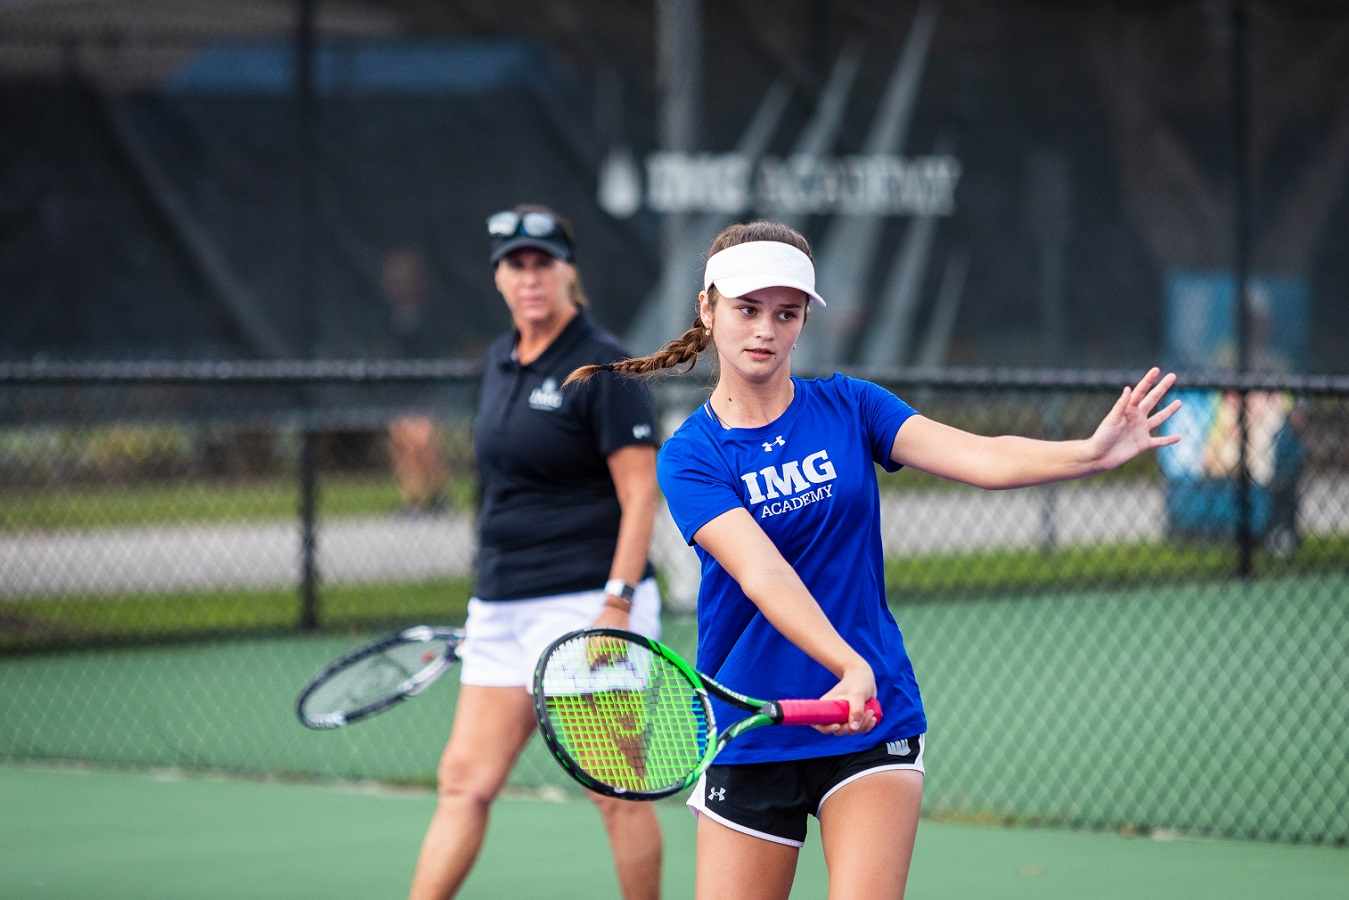 Female tennis player hits a shot while a coach looks on | IMGAcademy.com